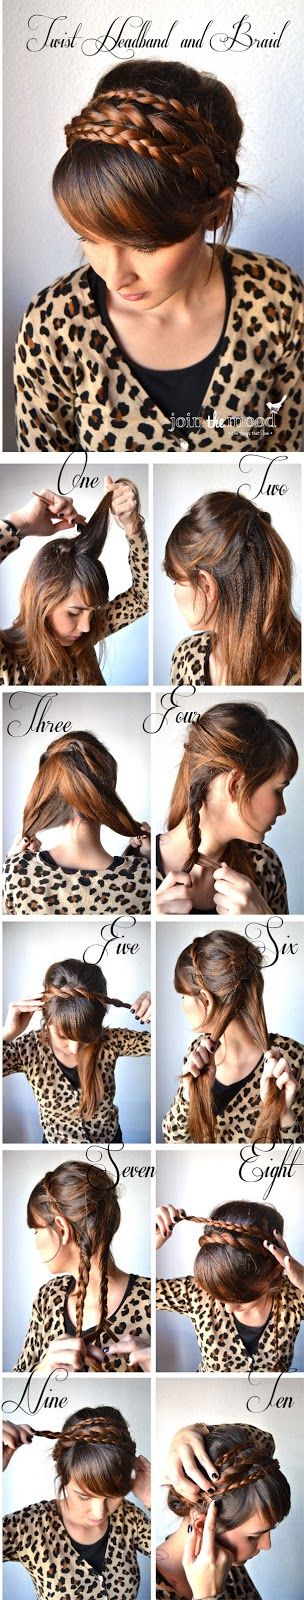 Make a Twist Headband And Braid Headband